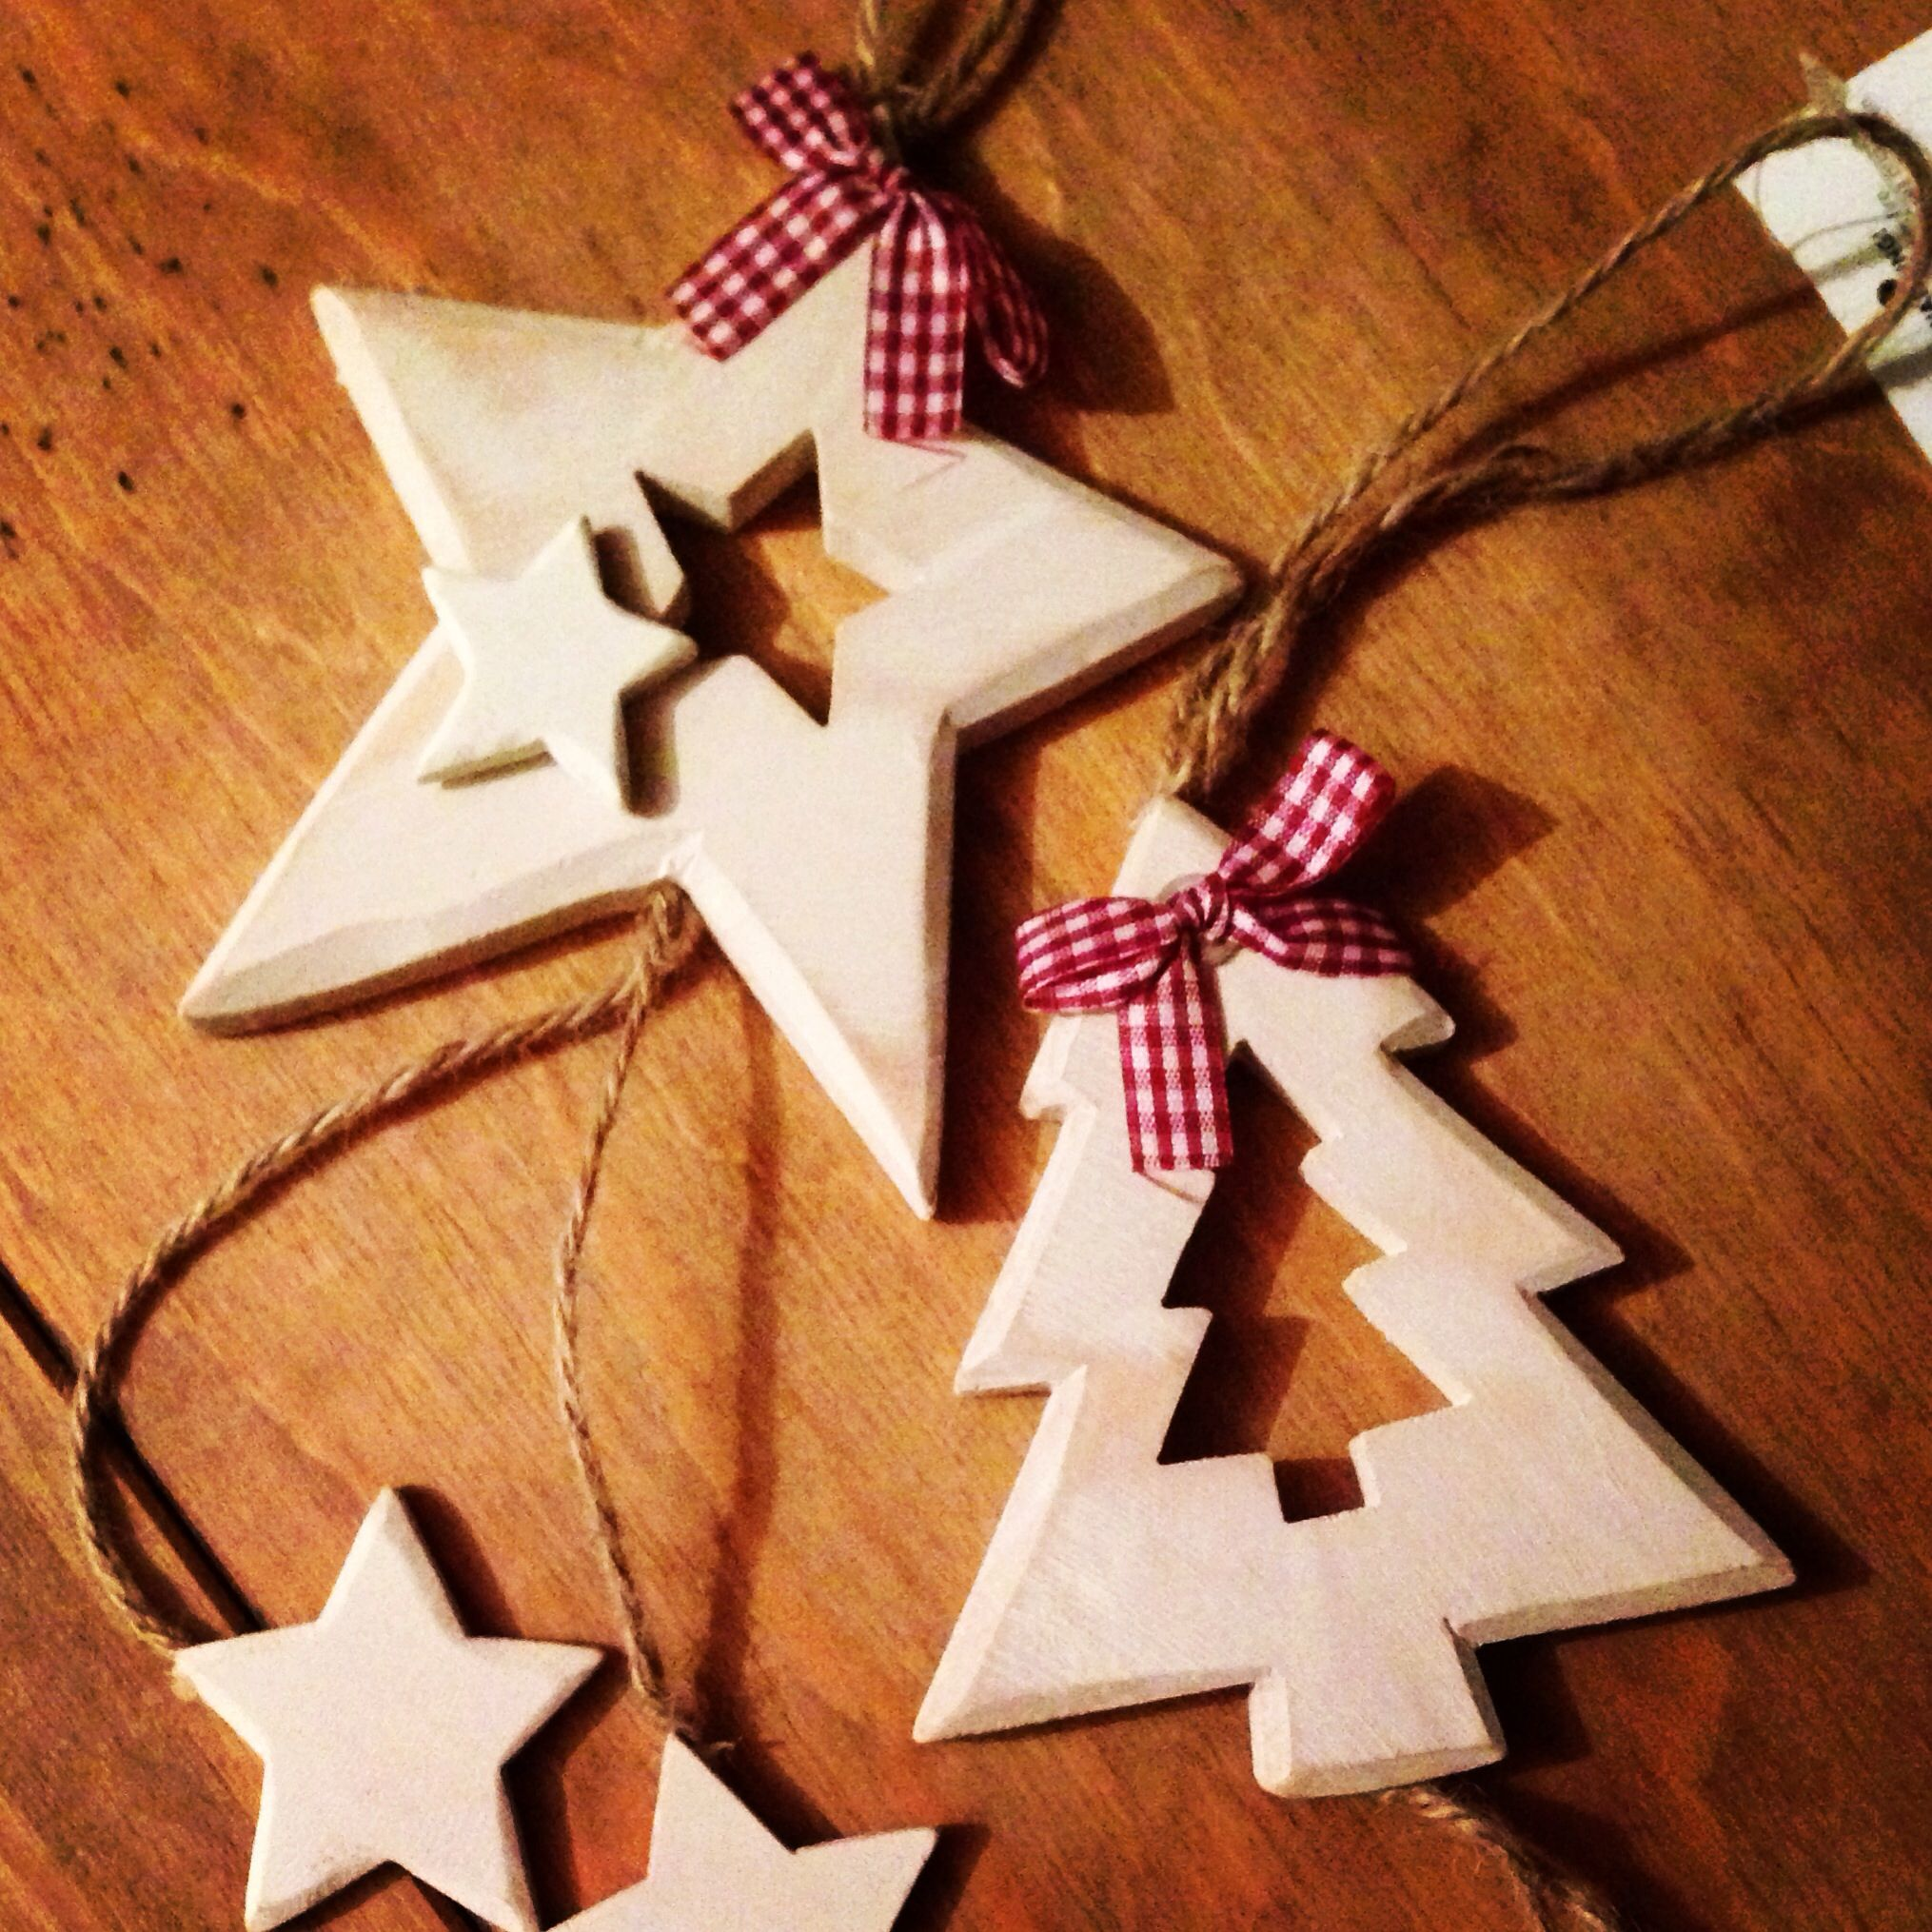 Wooden Christmas Decorations Available In Our Christmas Category At Wwwmyauntyscom